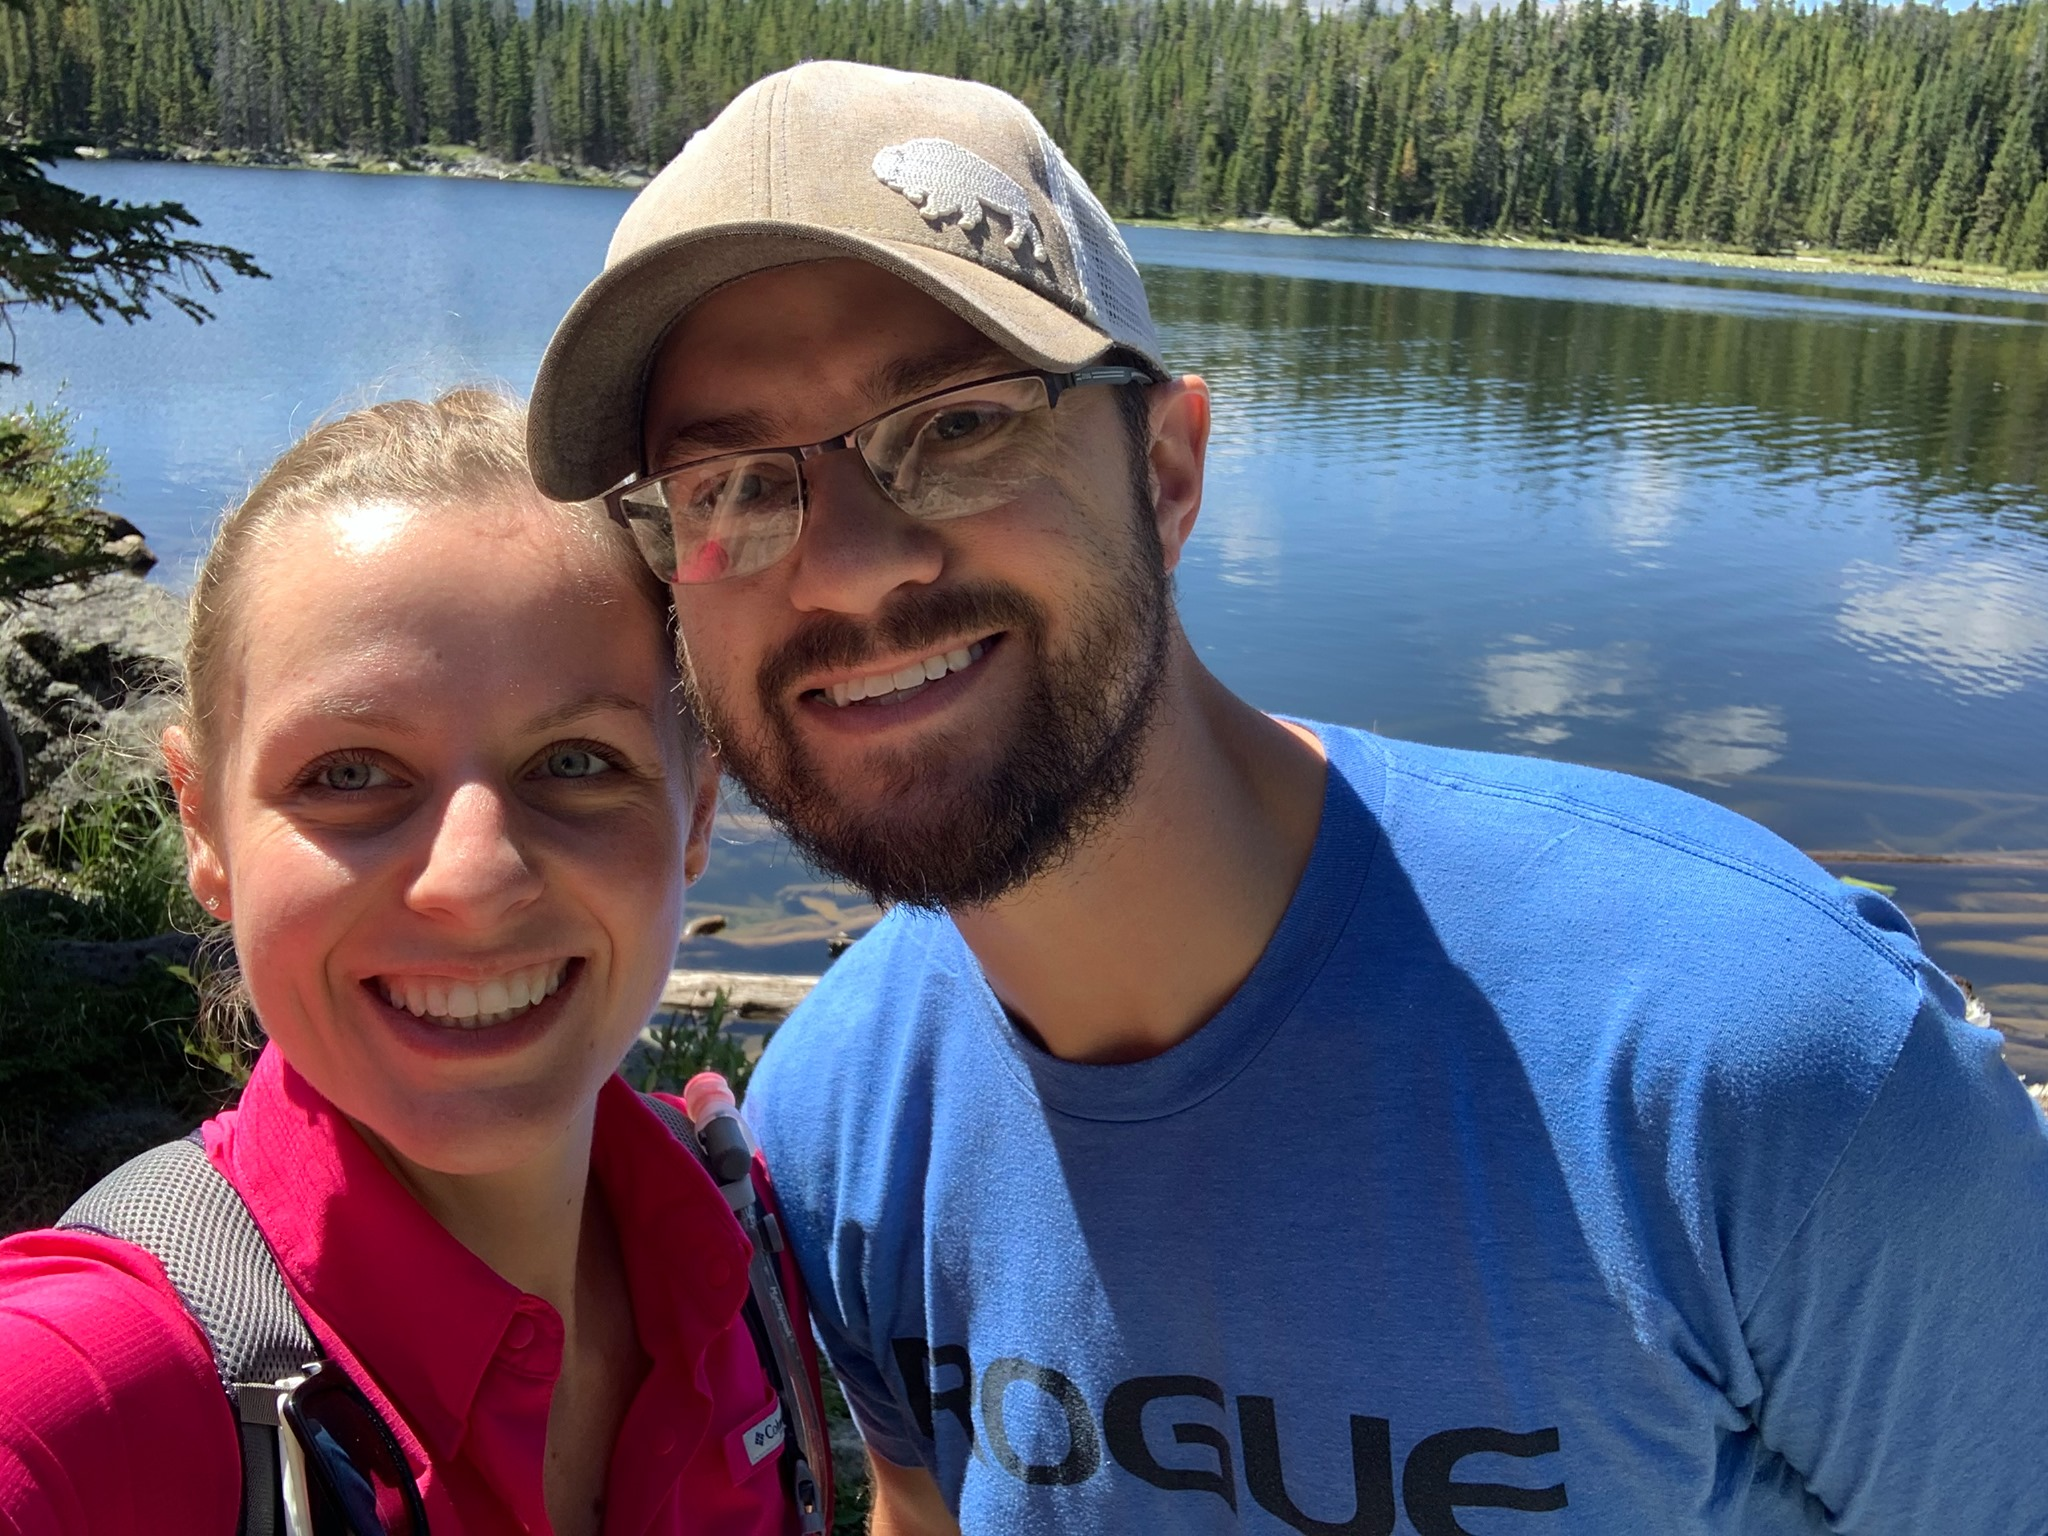 Tyler Stearns met and married his wife in 2014.